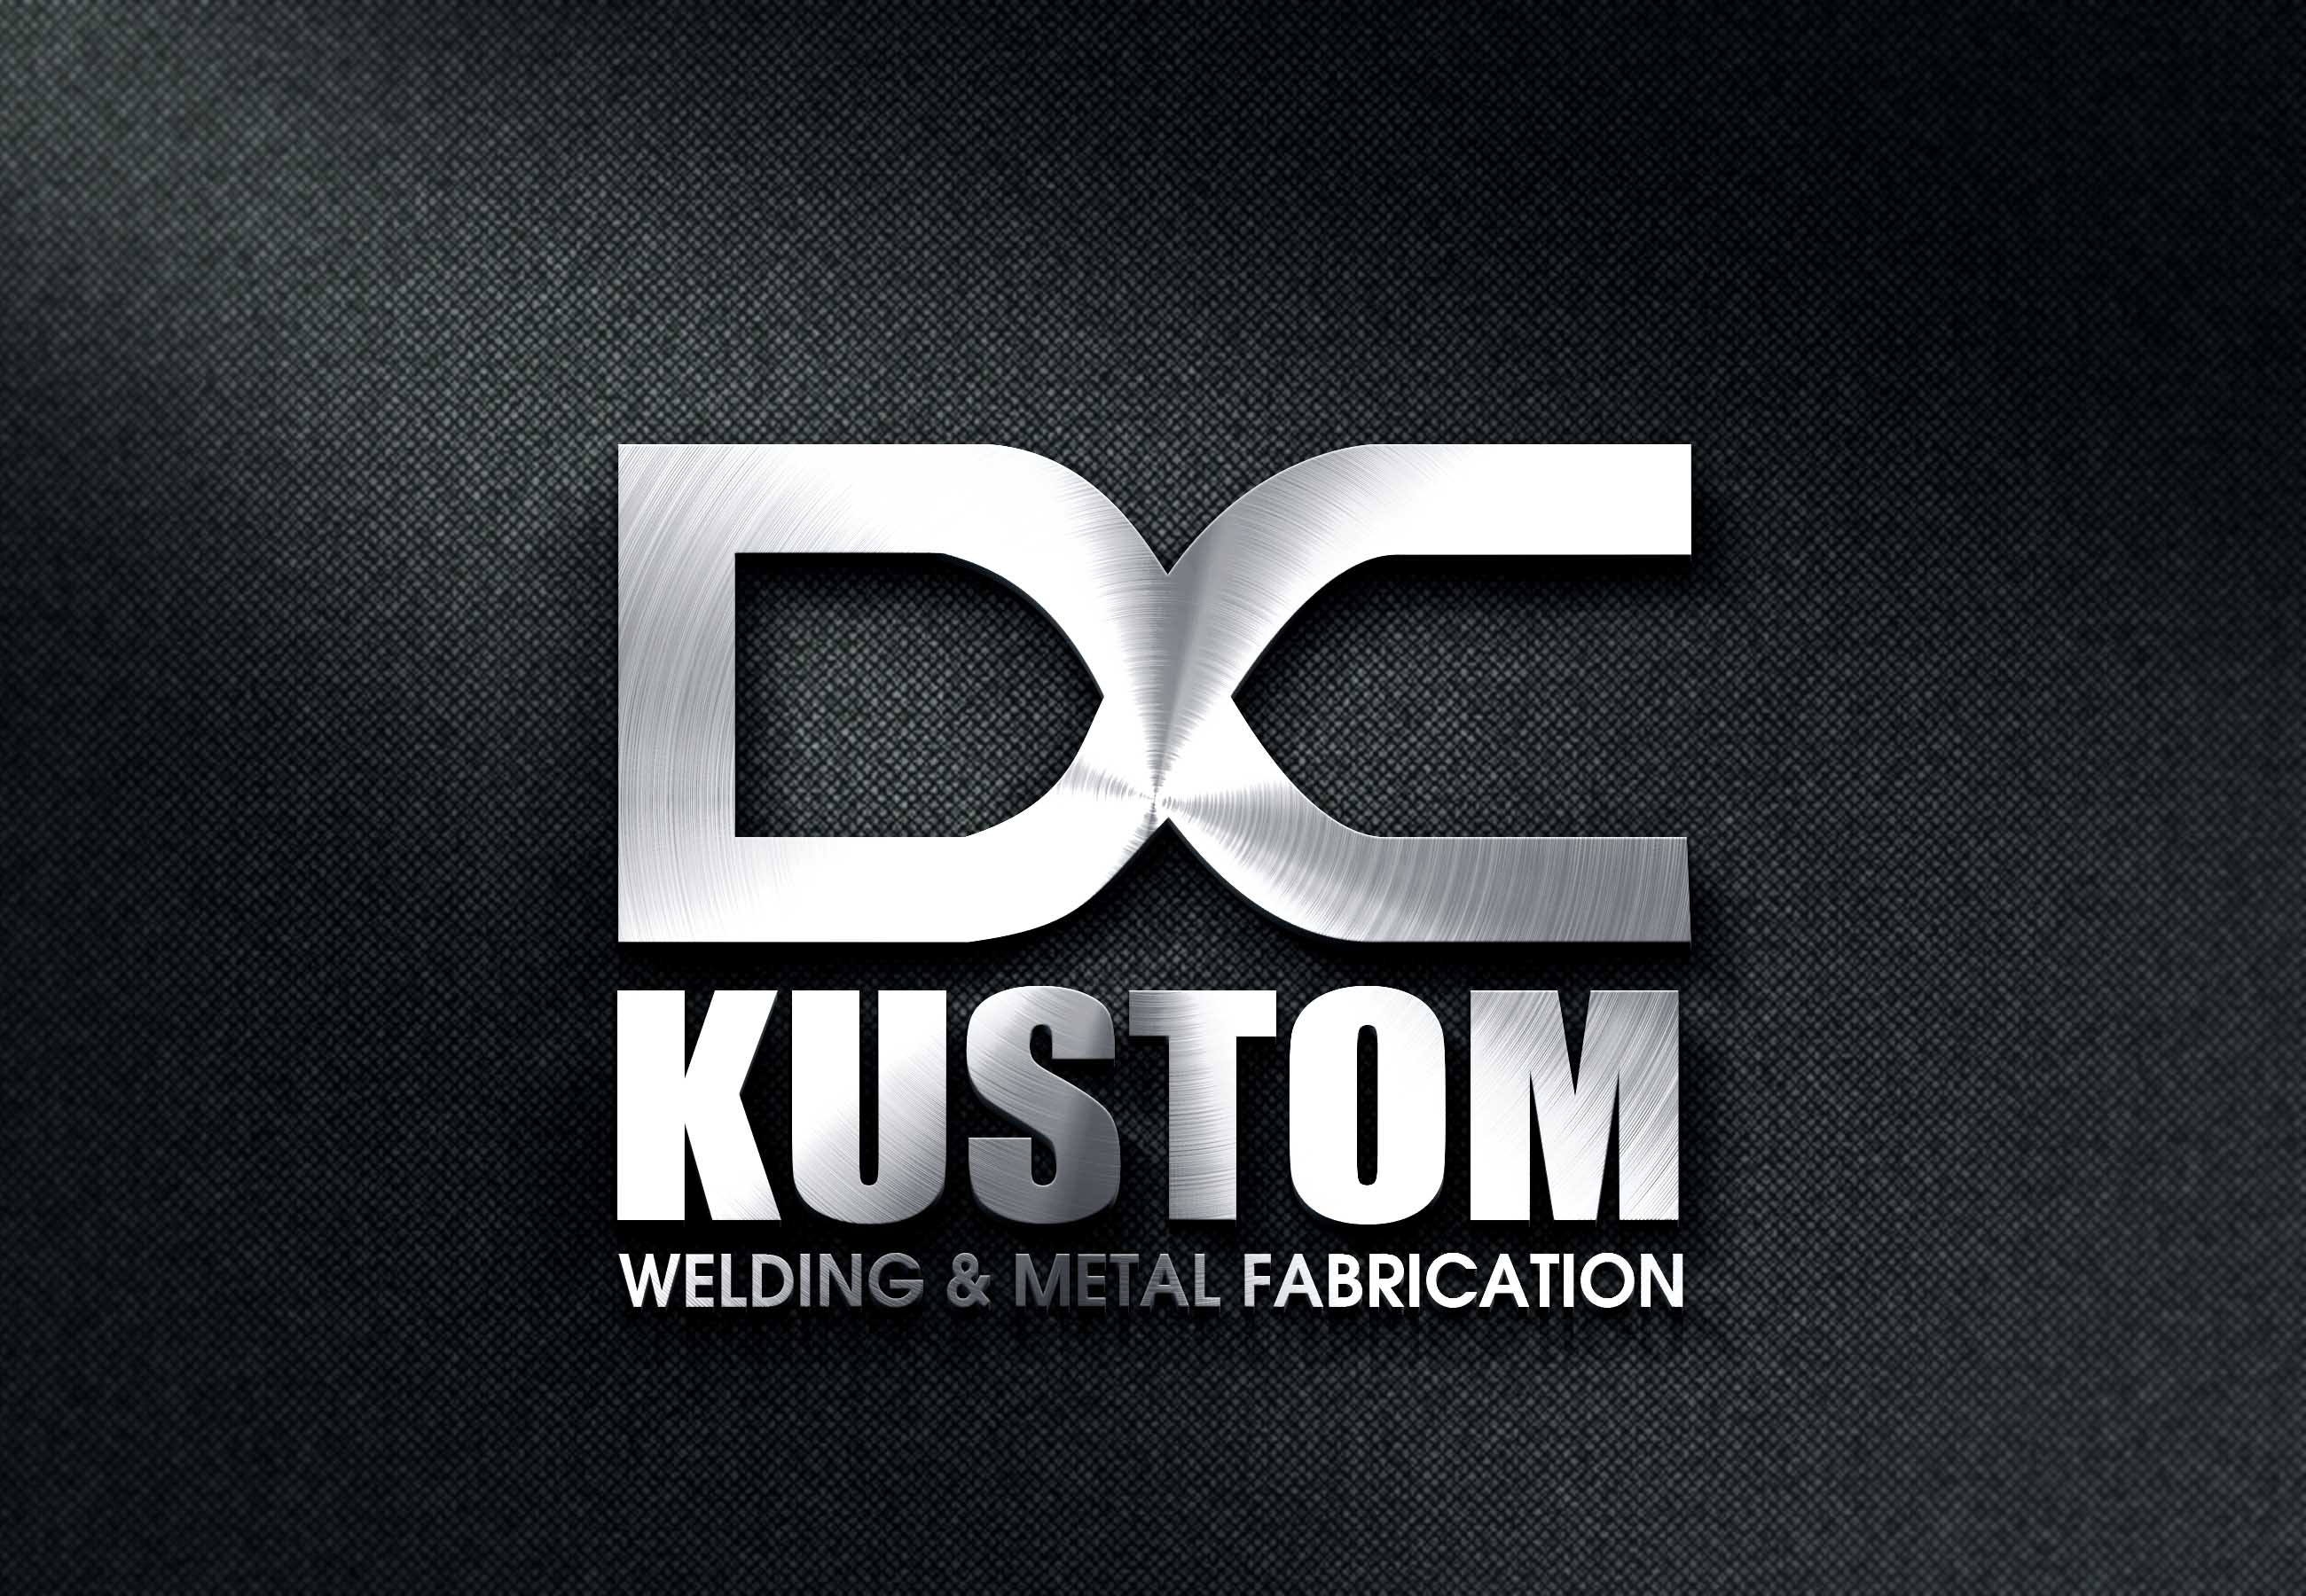 Logo Design by Private User - Entry No. 100 in the Logo Design Contest Imaginative Logo Design for DC KUSTOM WELDING & METAL FABRICATION.